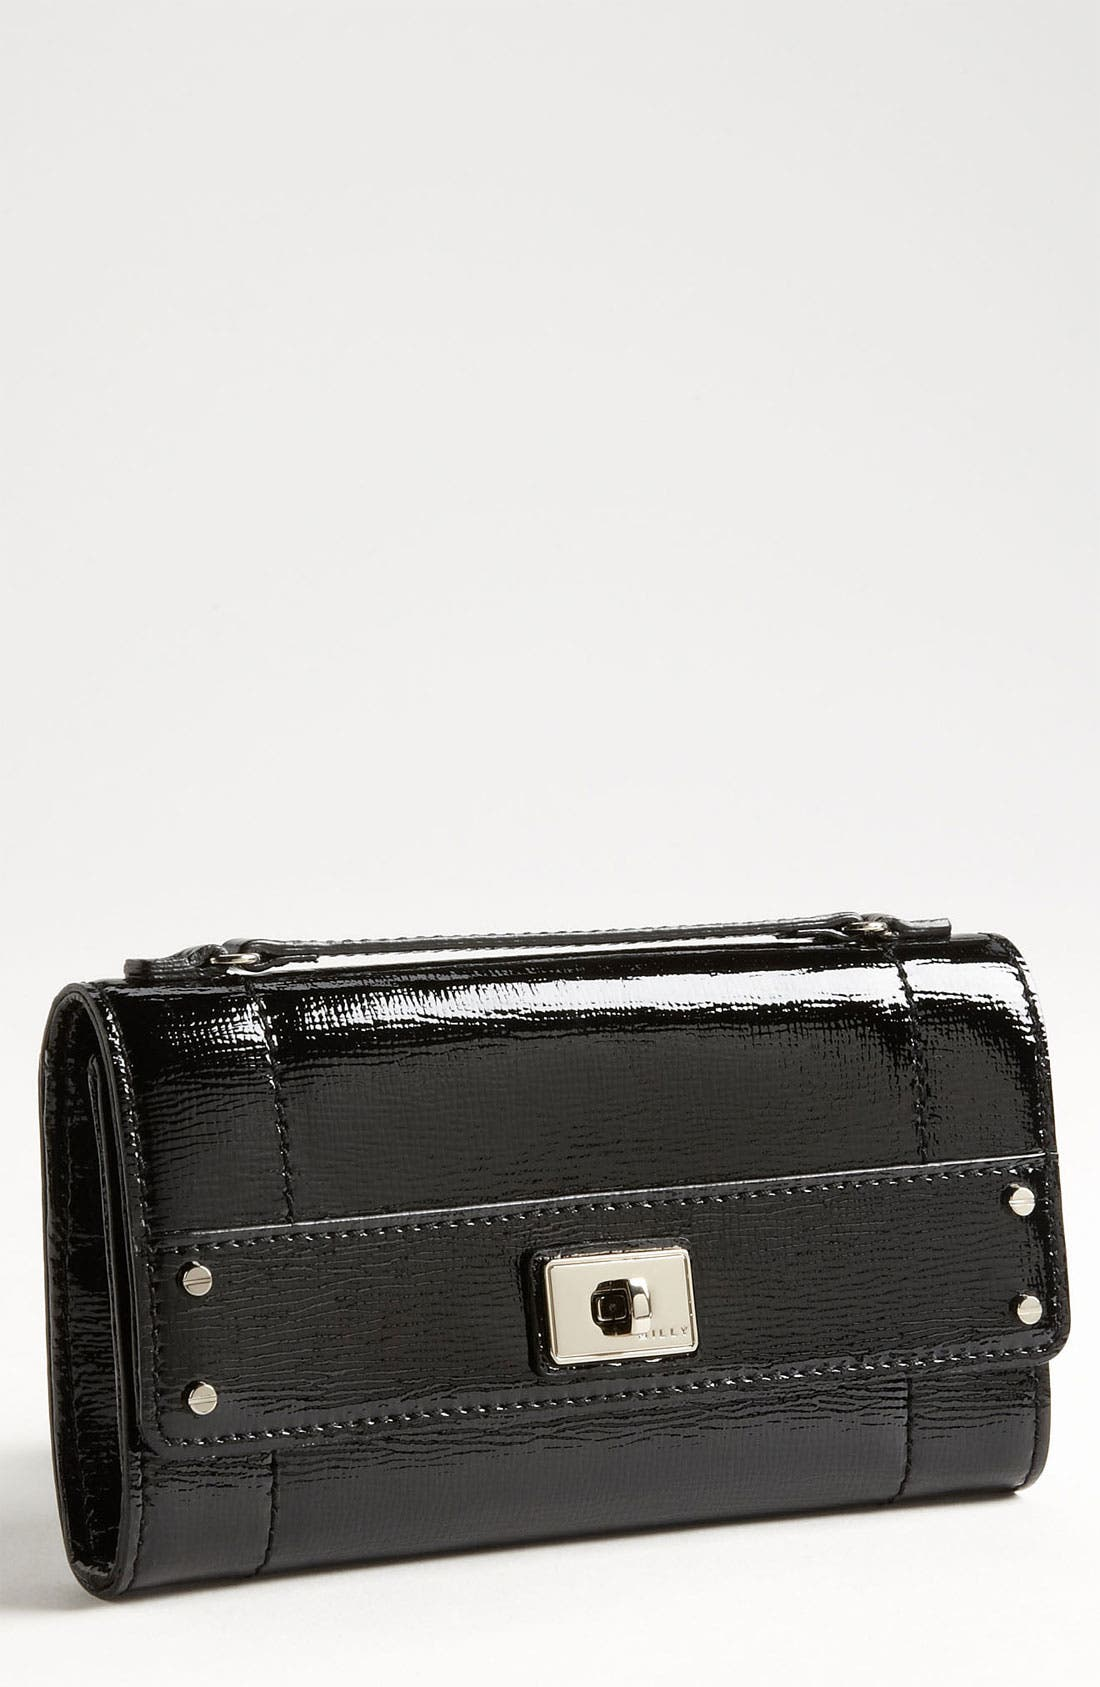 Alternate Image 1 Selected - Milly 'Colette' Patent Leather Wallet